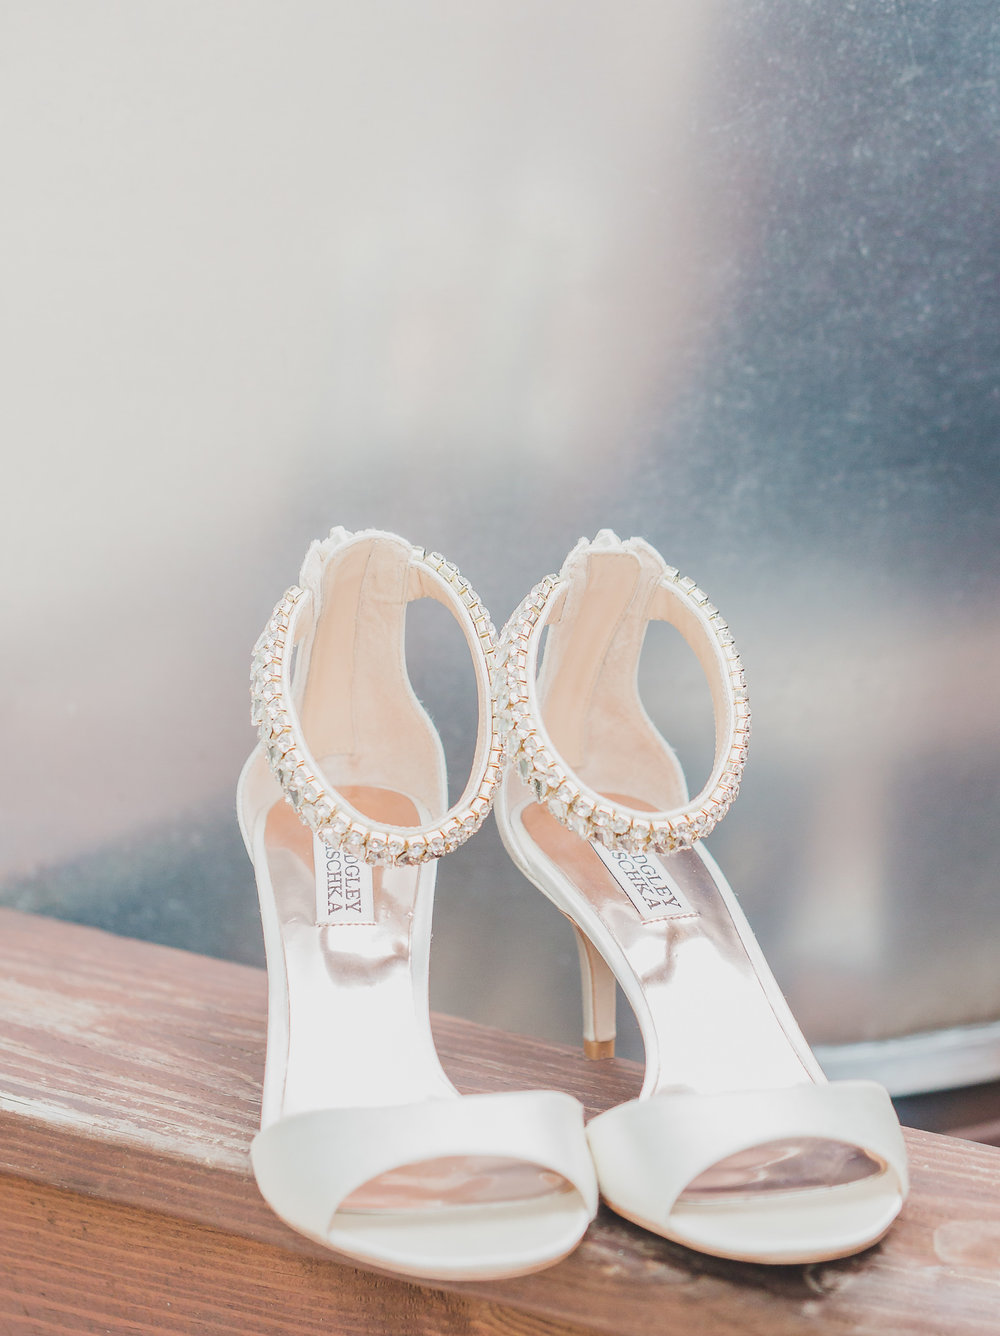 Wedding Shoes at 5eleven in pensacola